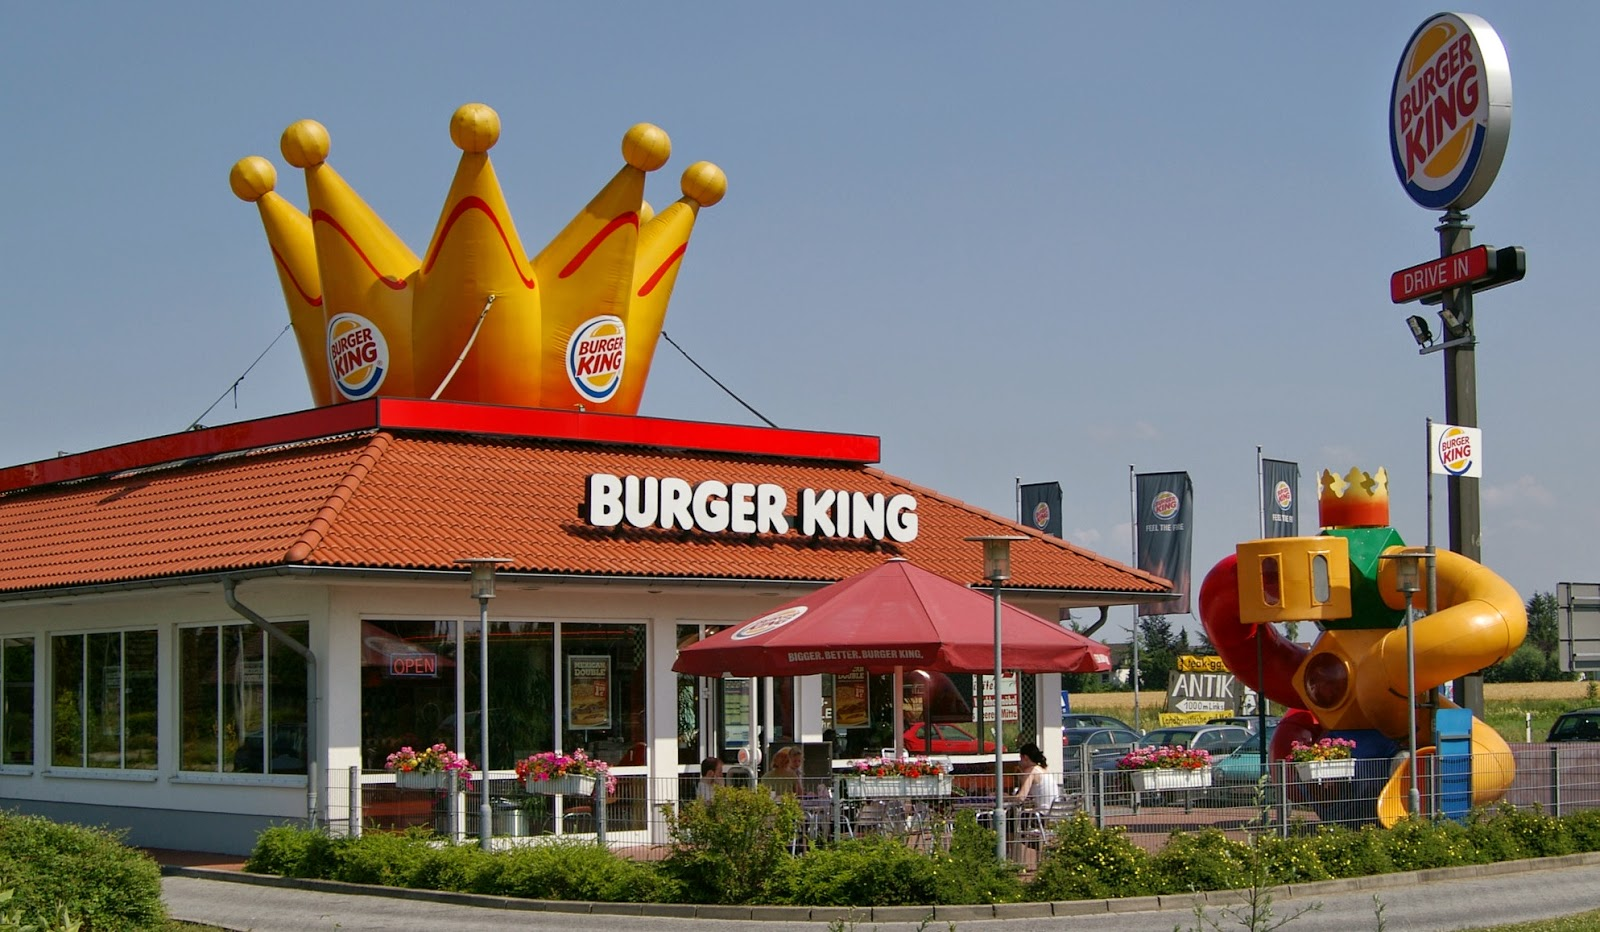 Lanchonete fast food Burger King Miami Orlando